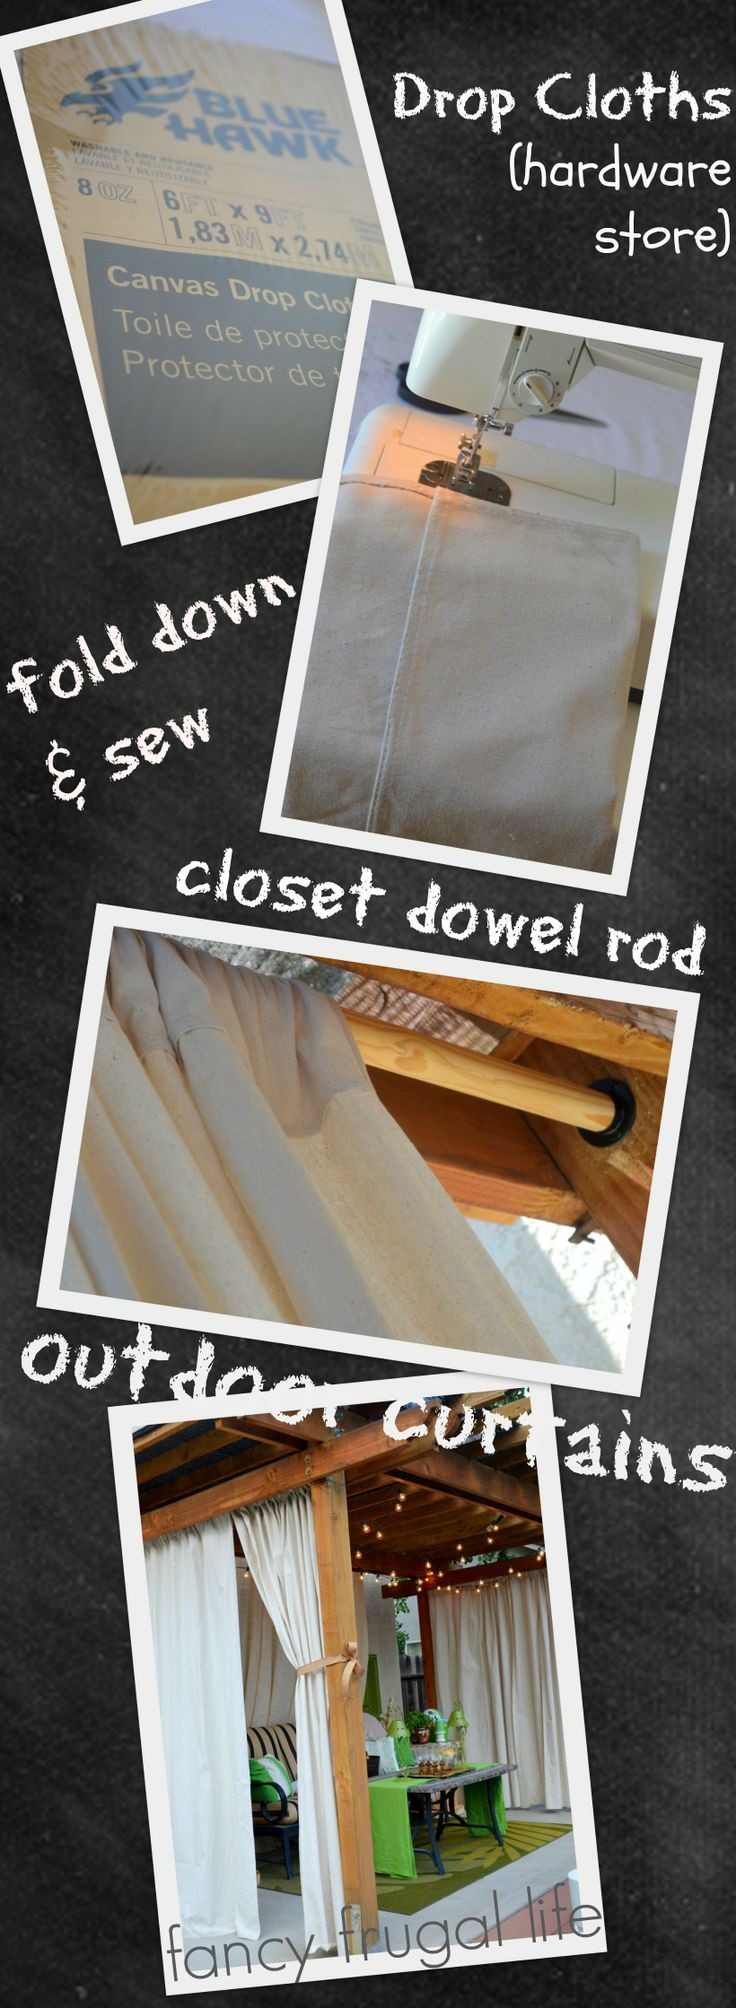 Outdoor curtains drop cloth - Best 20 Drop Cloth Curtains Outdoor Ideas On Pinterest Outdoor Curtains Screened Porch Curtains And Deck Curtains